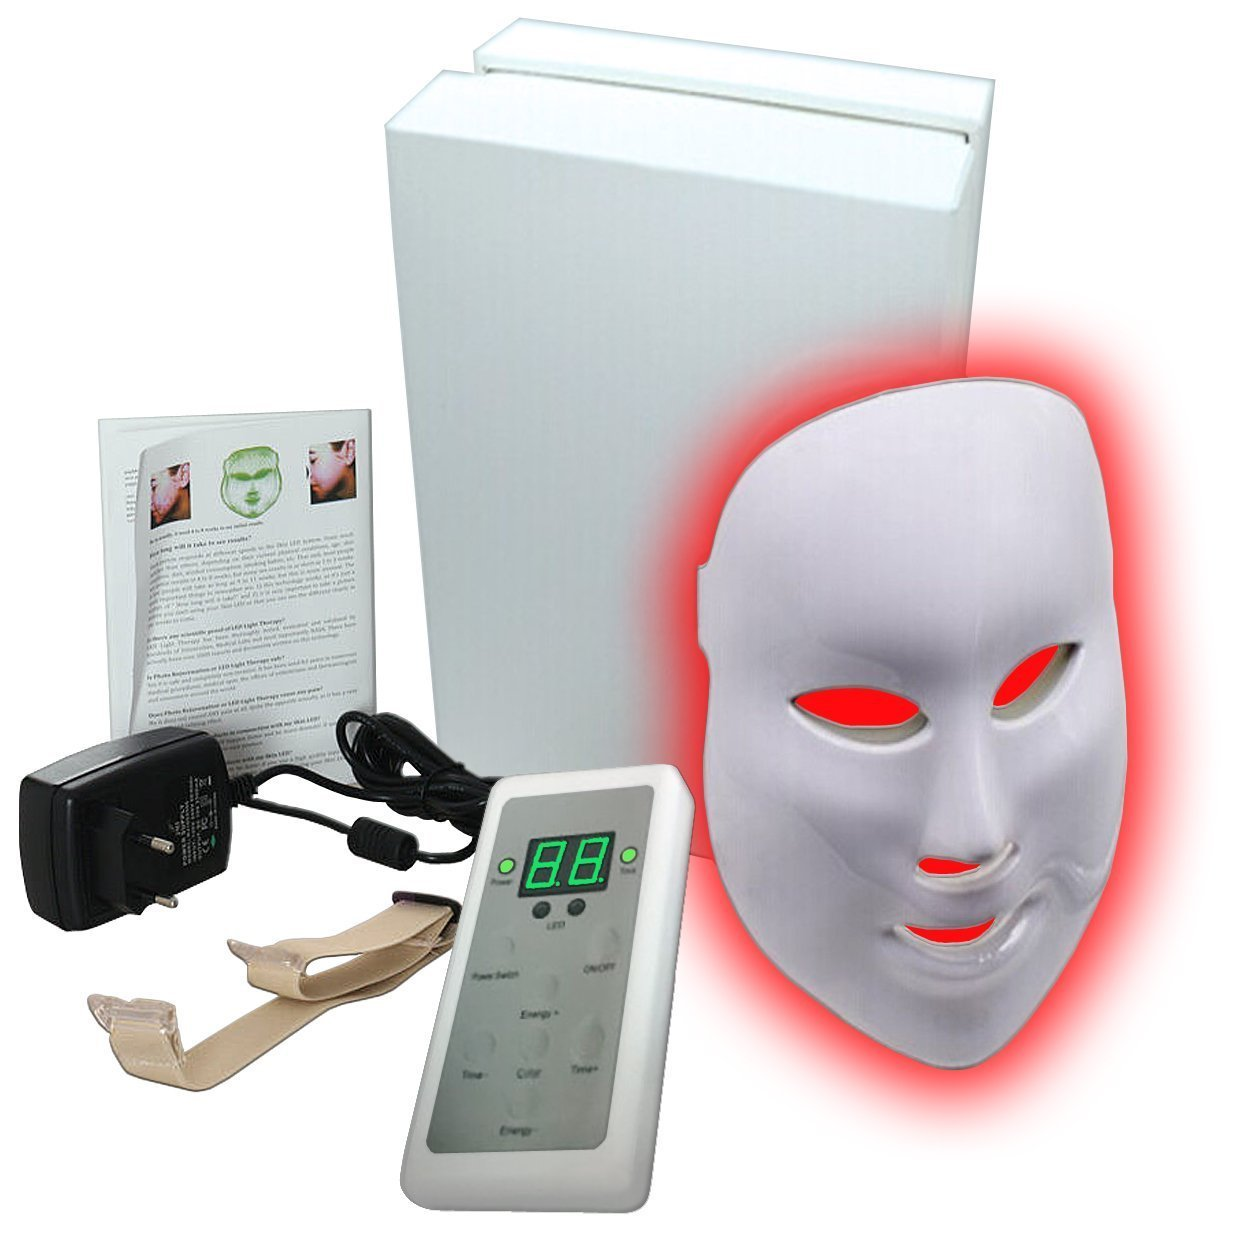 7 Color LED Mask Photon Light Skin Rejuvenation Therapy Facial Mask Photon Photodynamics Beauty Facial Peels Machine Skin Care 7color led mask photon light skin rejuvenation therapy facial mask ice roller stainless steel blackhead needle bend curved